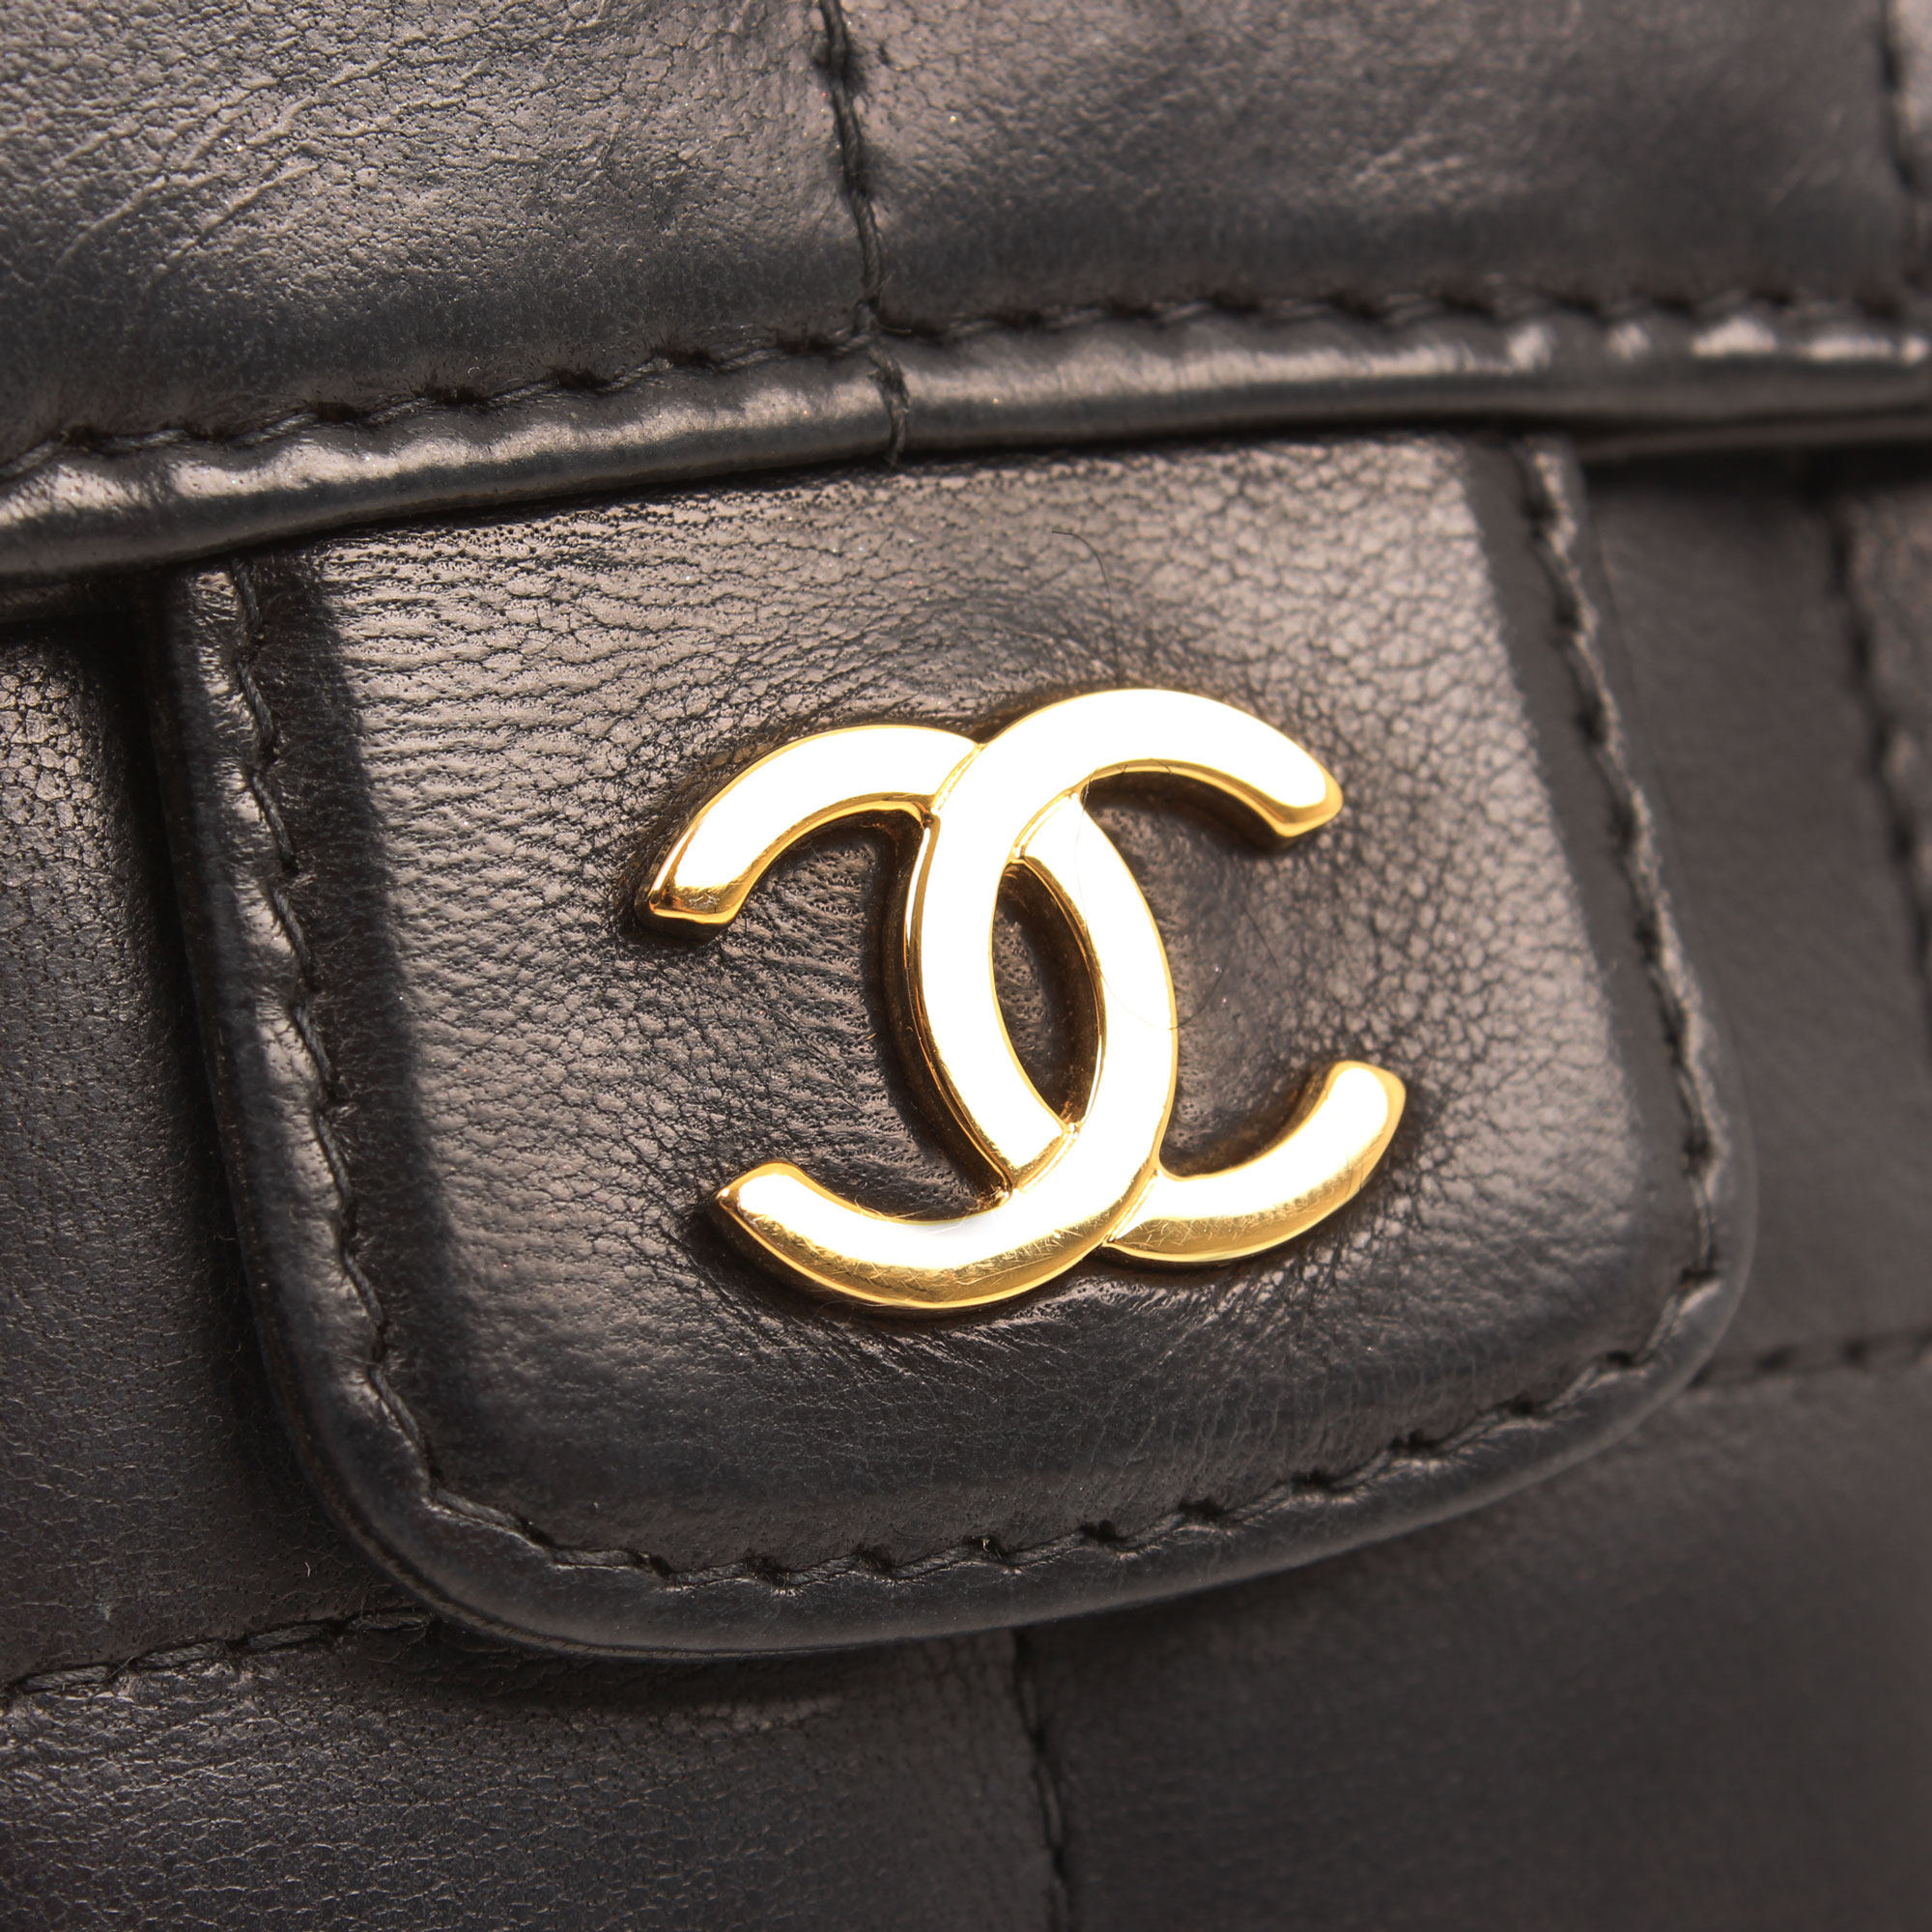 Imagen de la doble c del bolso chanel mini crossbody chocolate bar navy blue camelia cadena